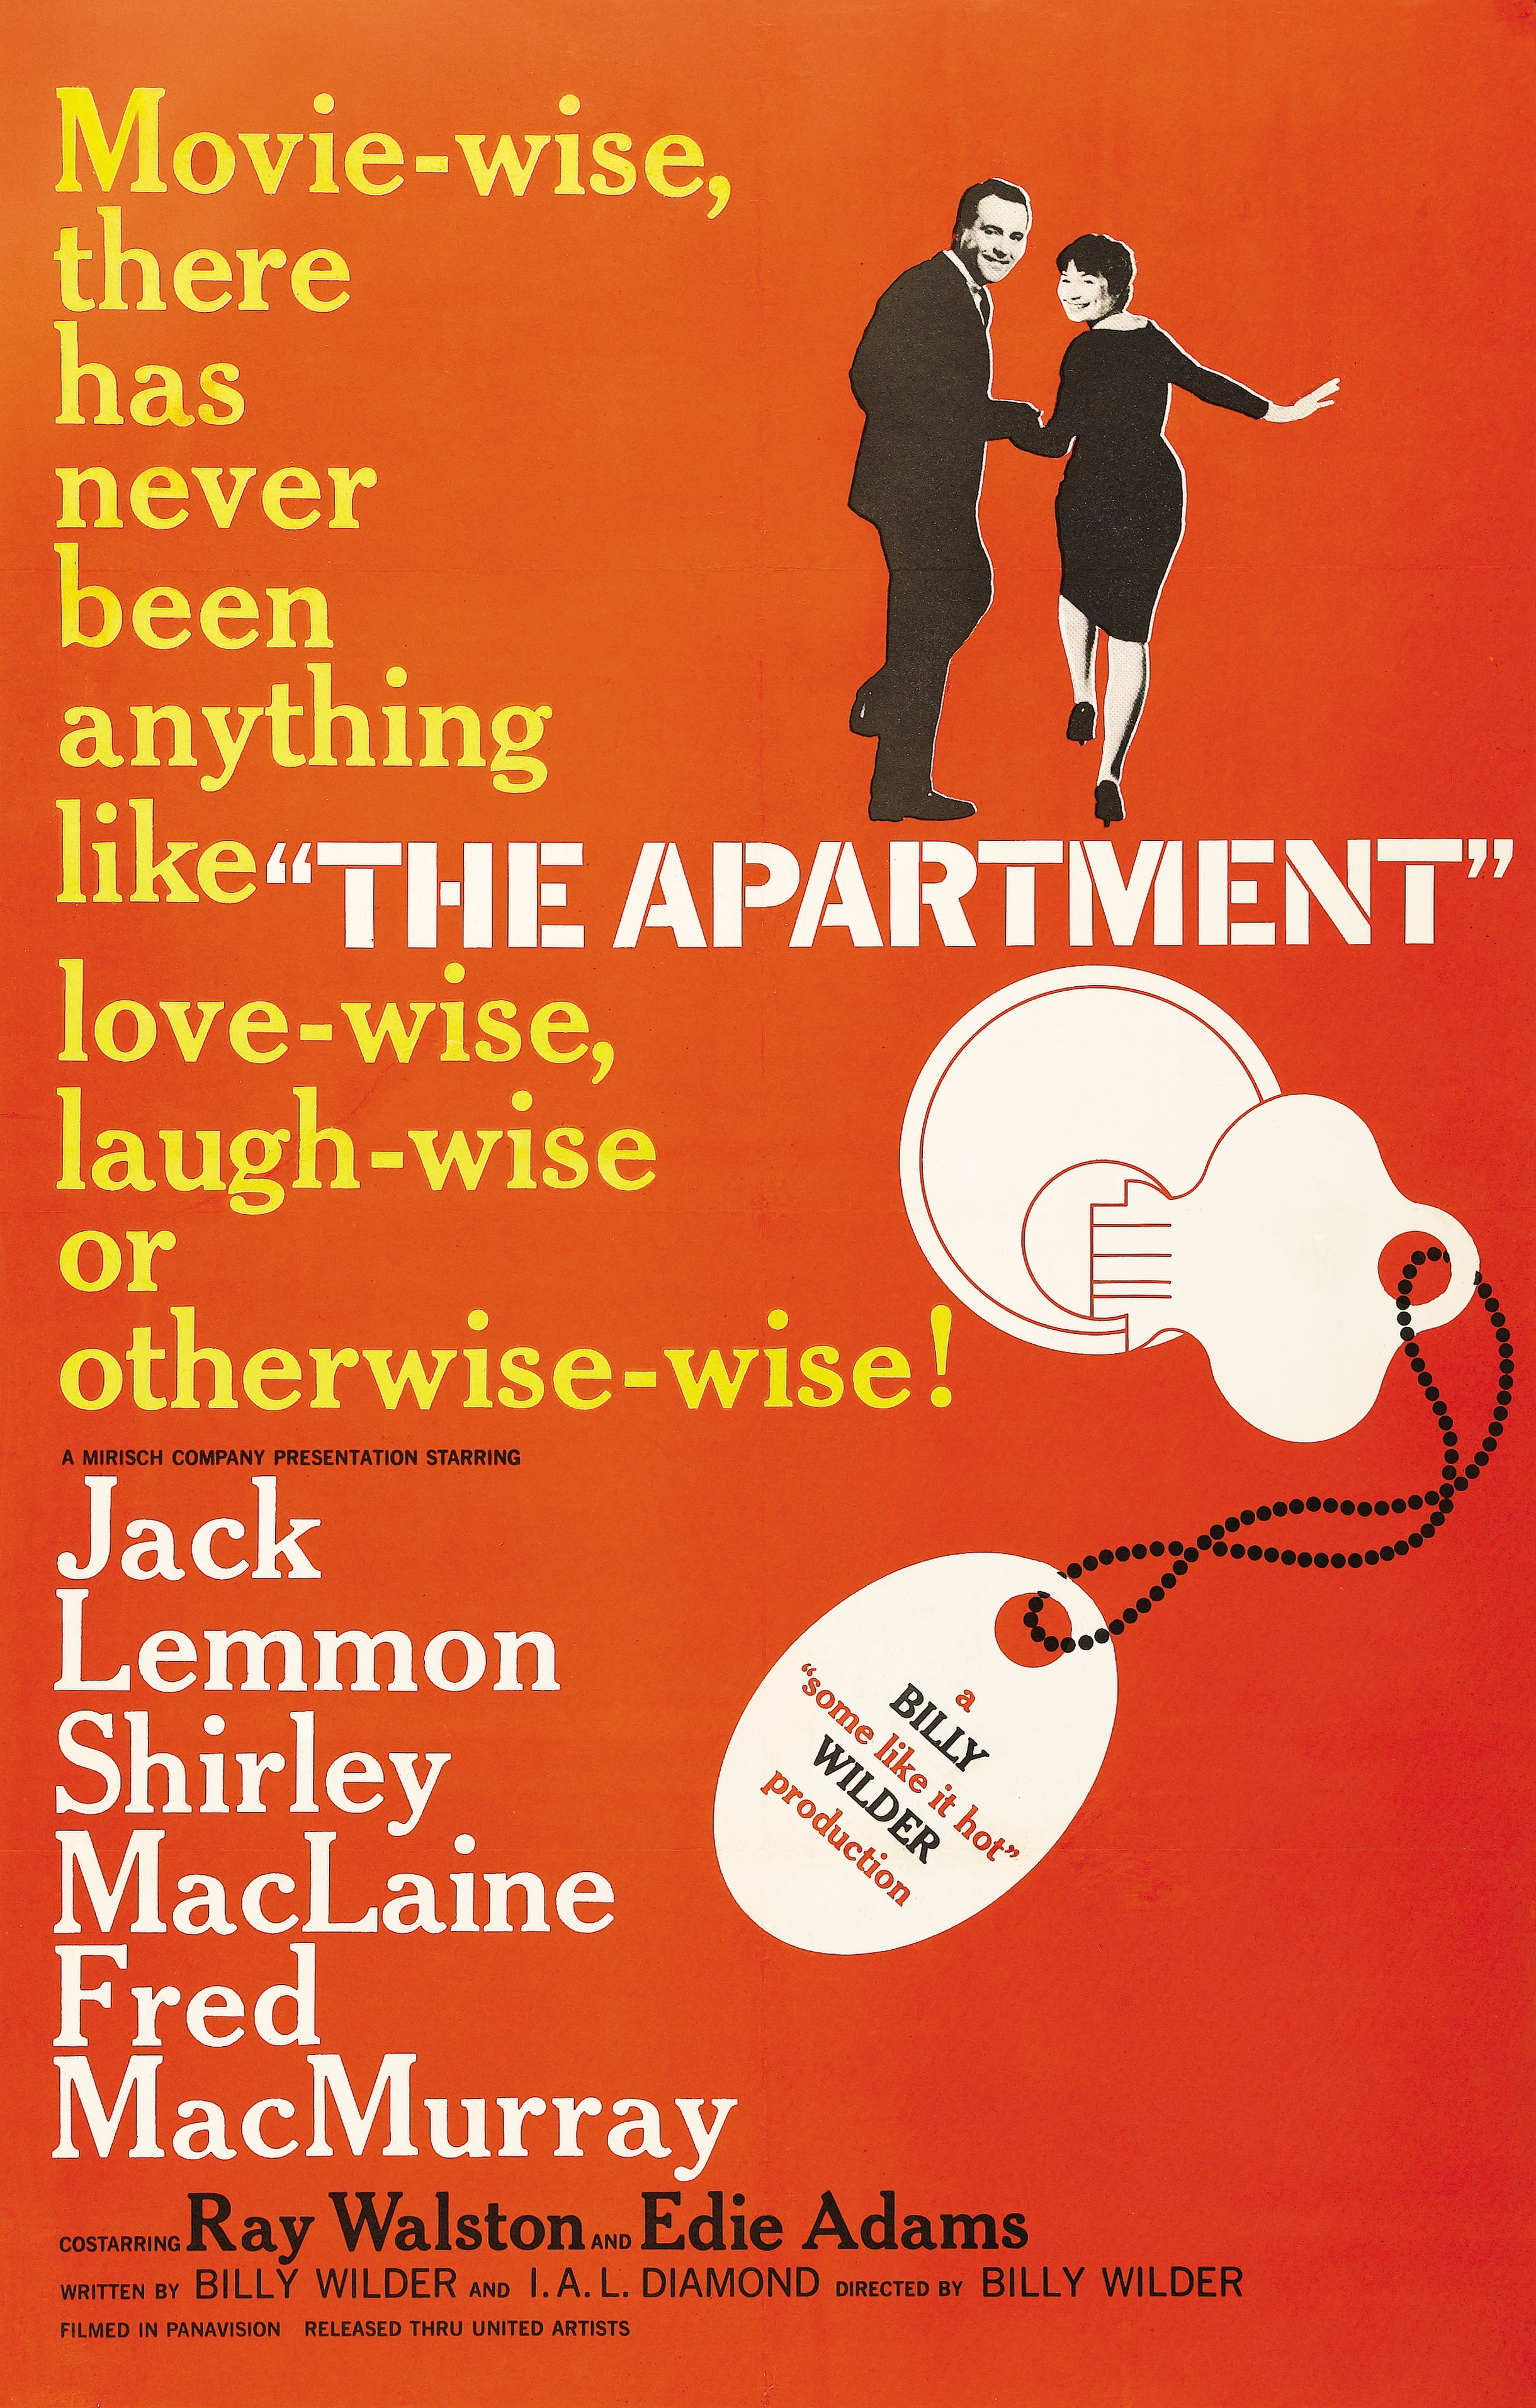 The Apartment (1960) with Jack Lemmon and Shirley MacLaine. This sardonic, sometimes dark but ultimately heart-warming film takes place over Christmas and New Year's. Wintery Manhattan in wide-screen black & white at the dawn of the 1960's.